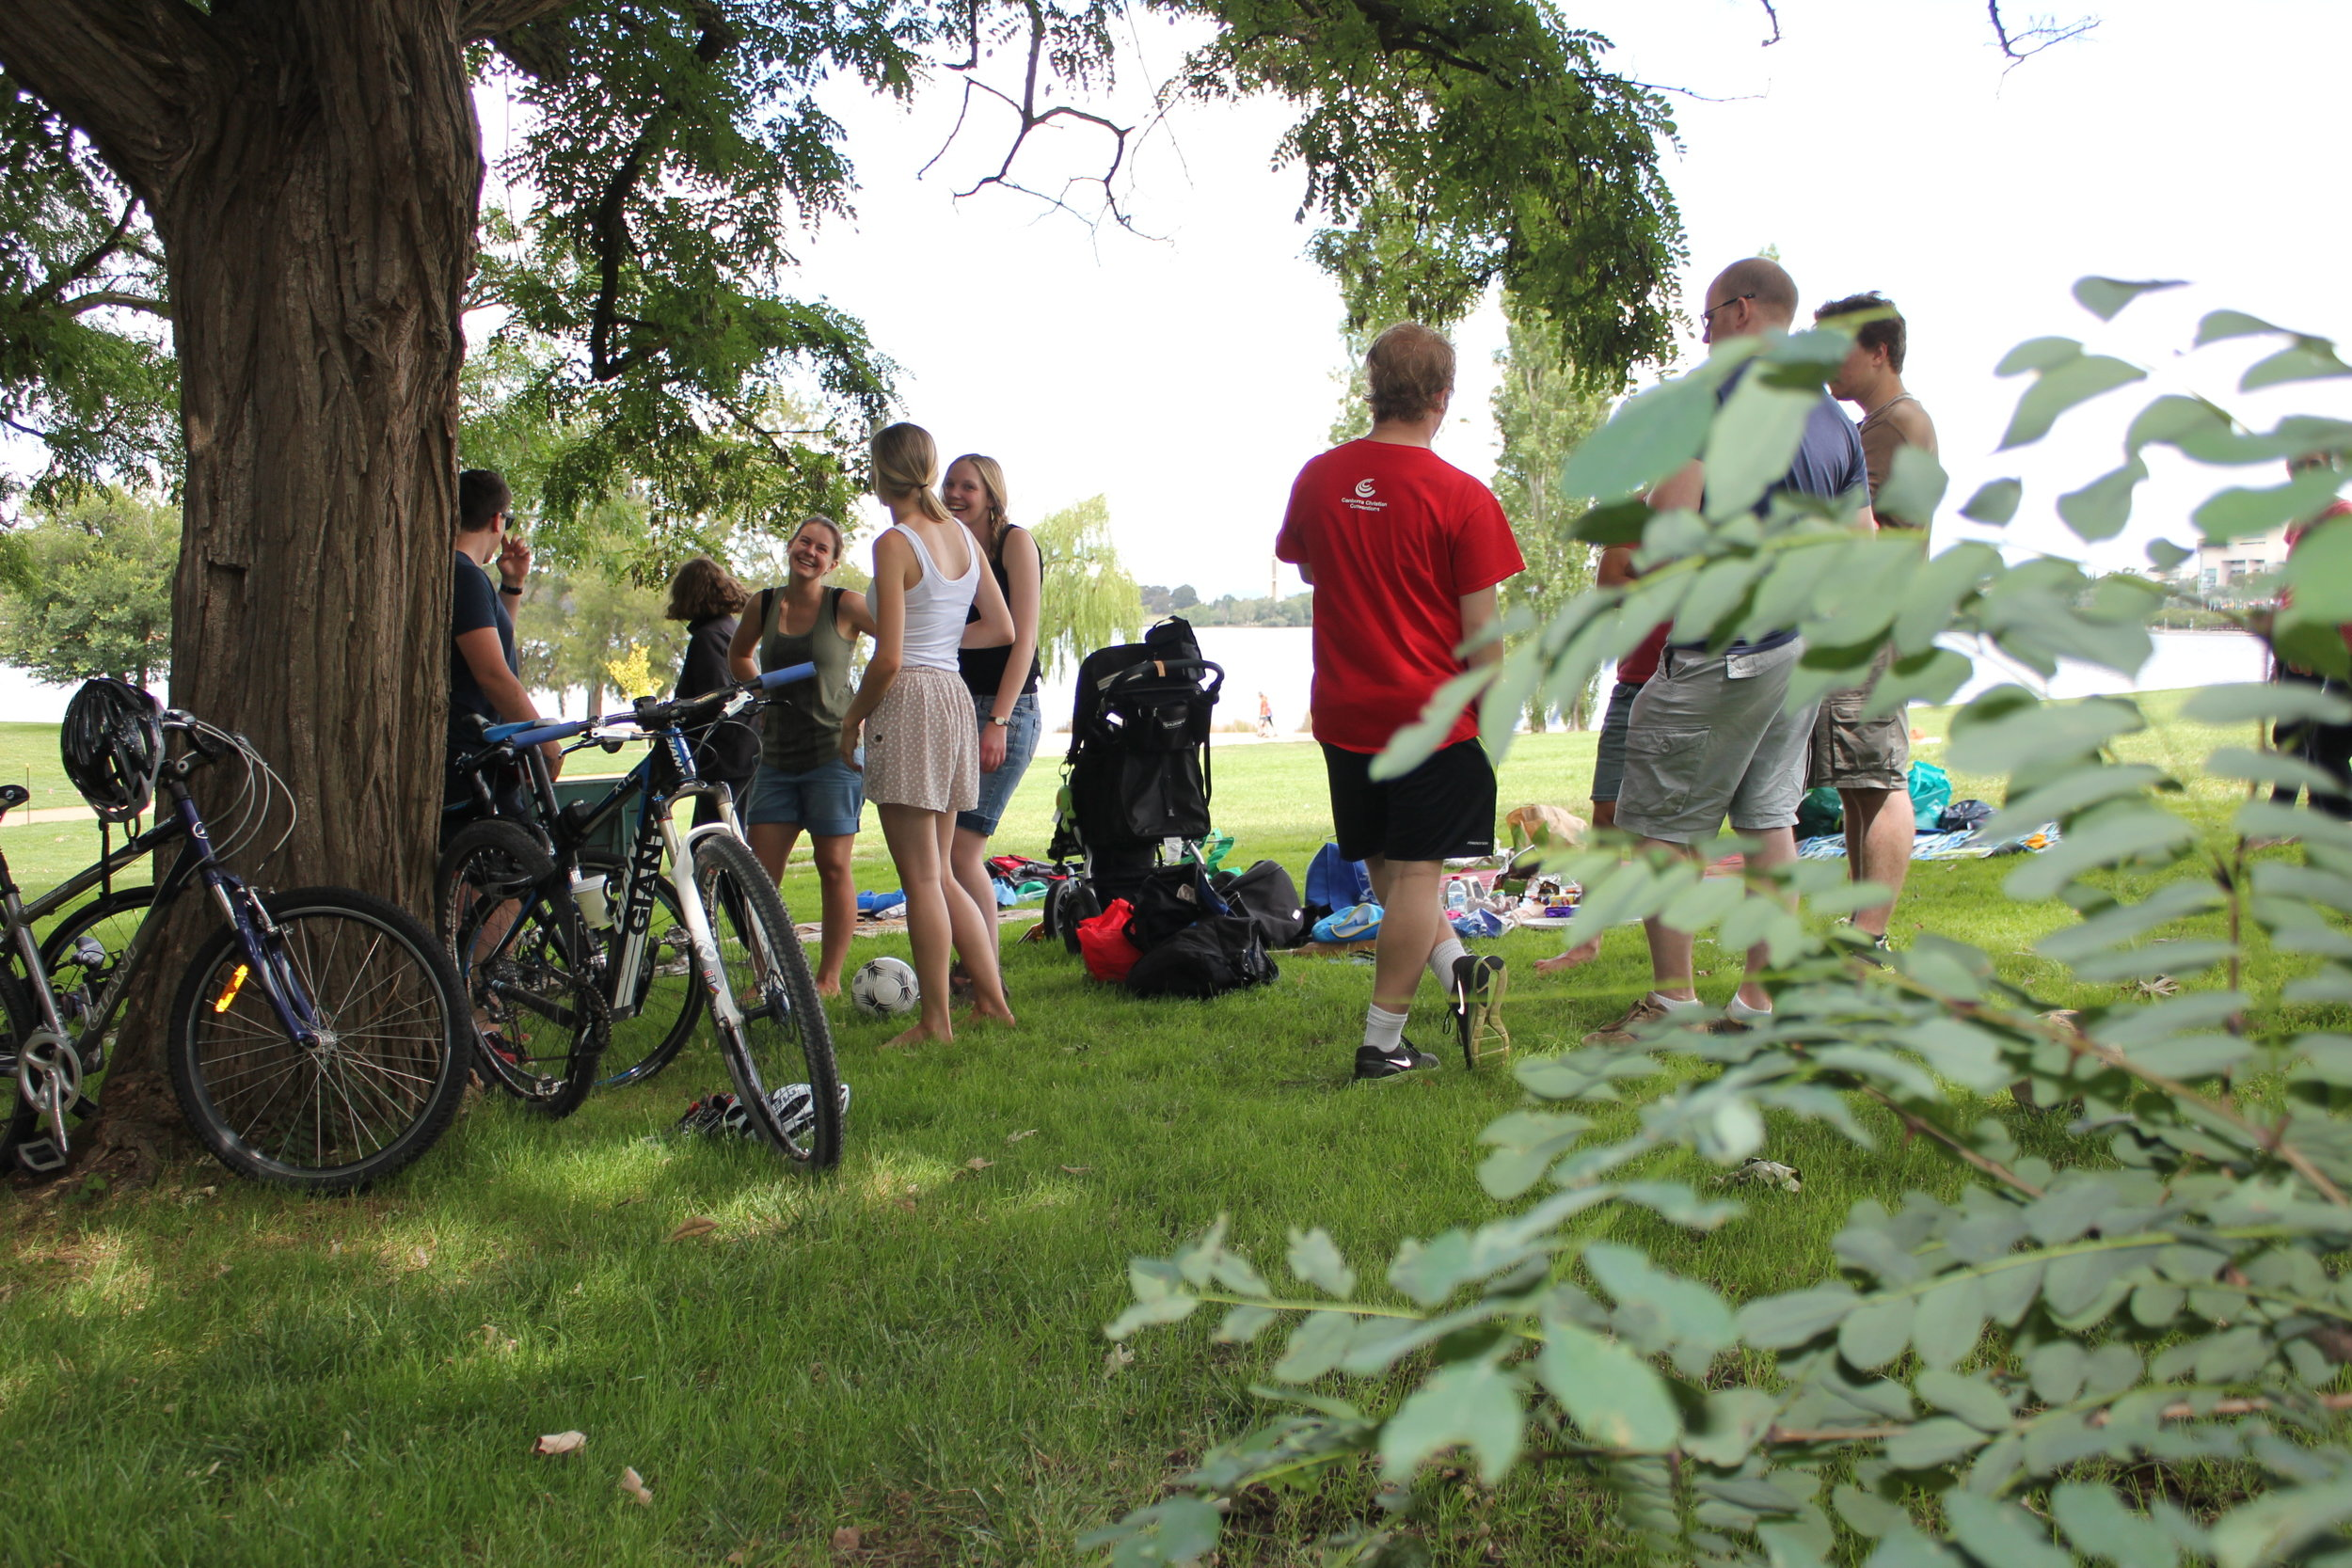 Bike ride and picnic 2013, photographer unknown (was this you??)